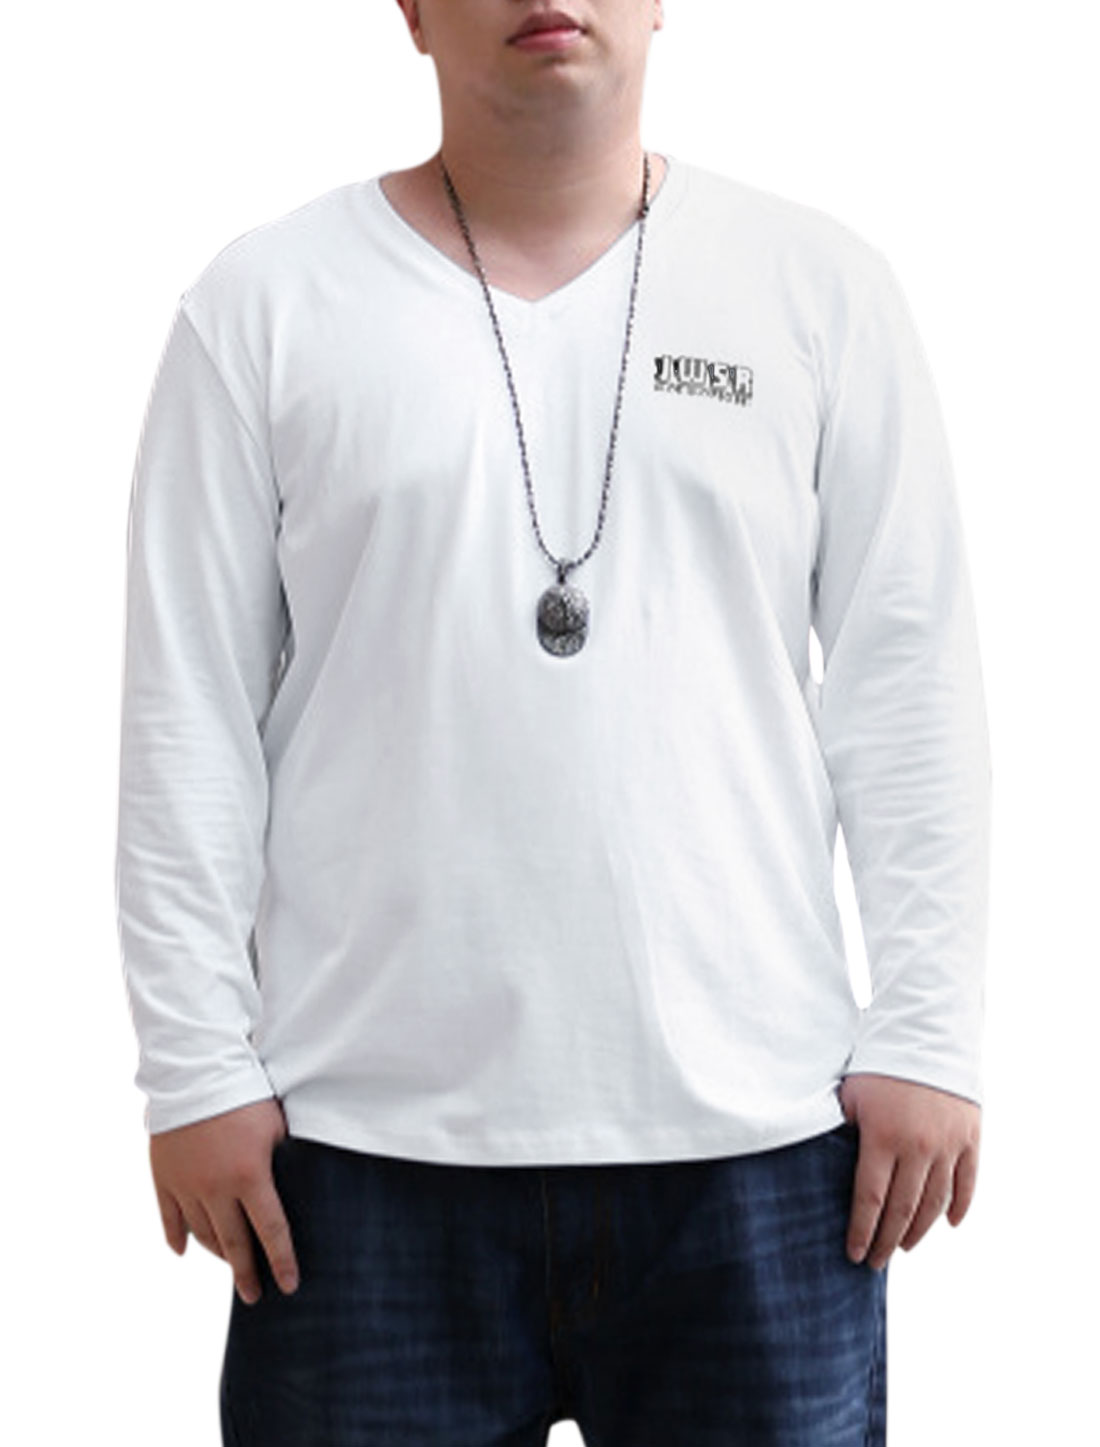 Men Newly Soft V Neck Letters Print Casual T-shirt White XL